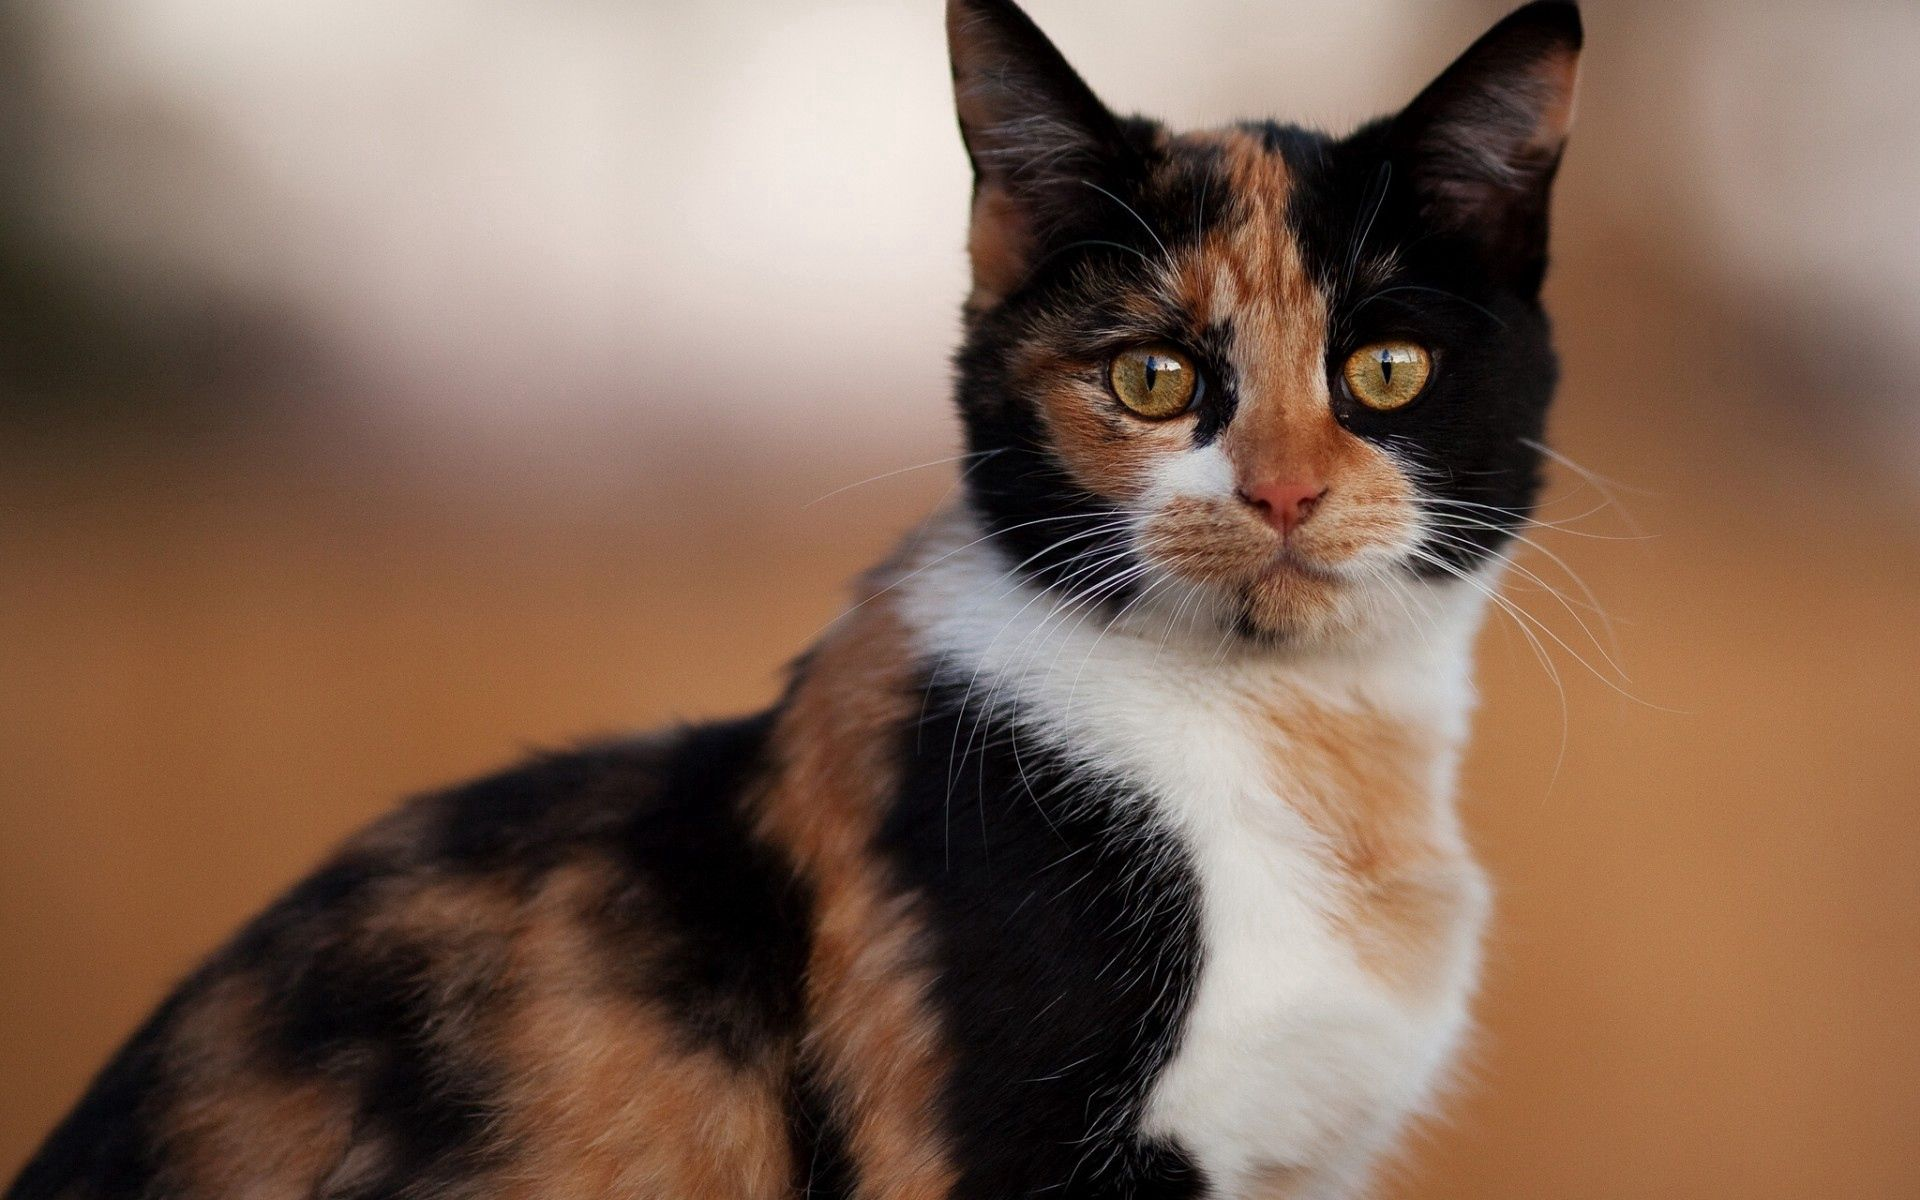 55464 download wallpaper Animals, Cat, Spotted, Spotty, Color screensavers and pictures for free